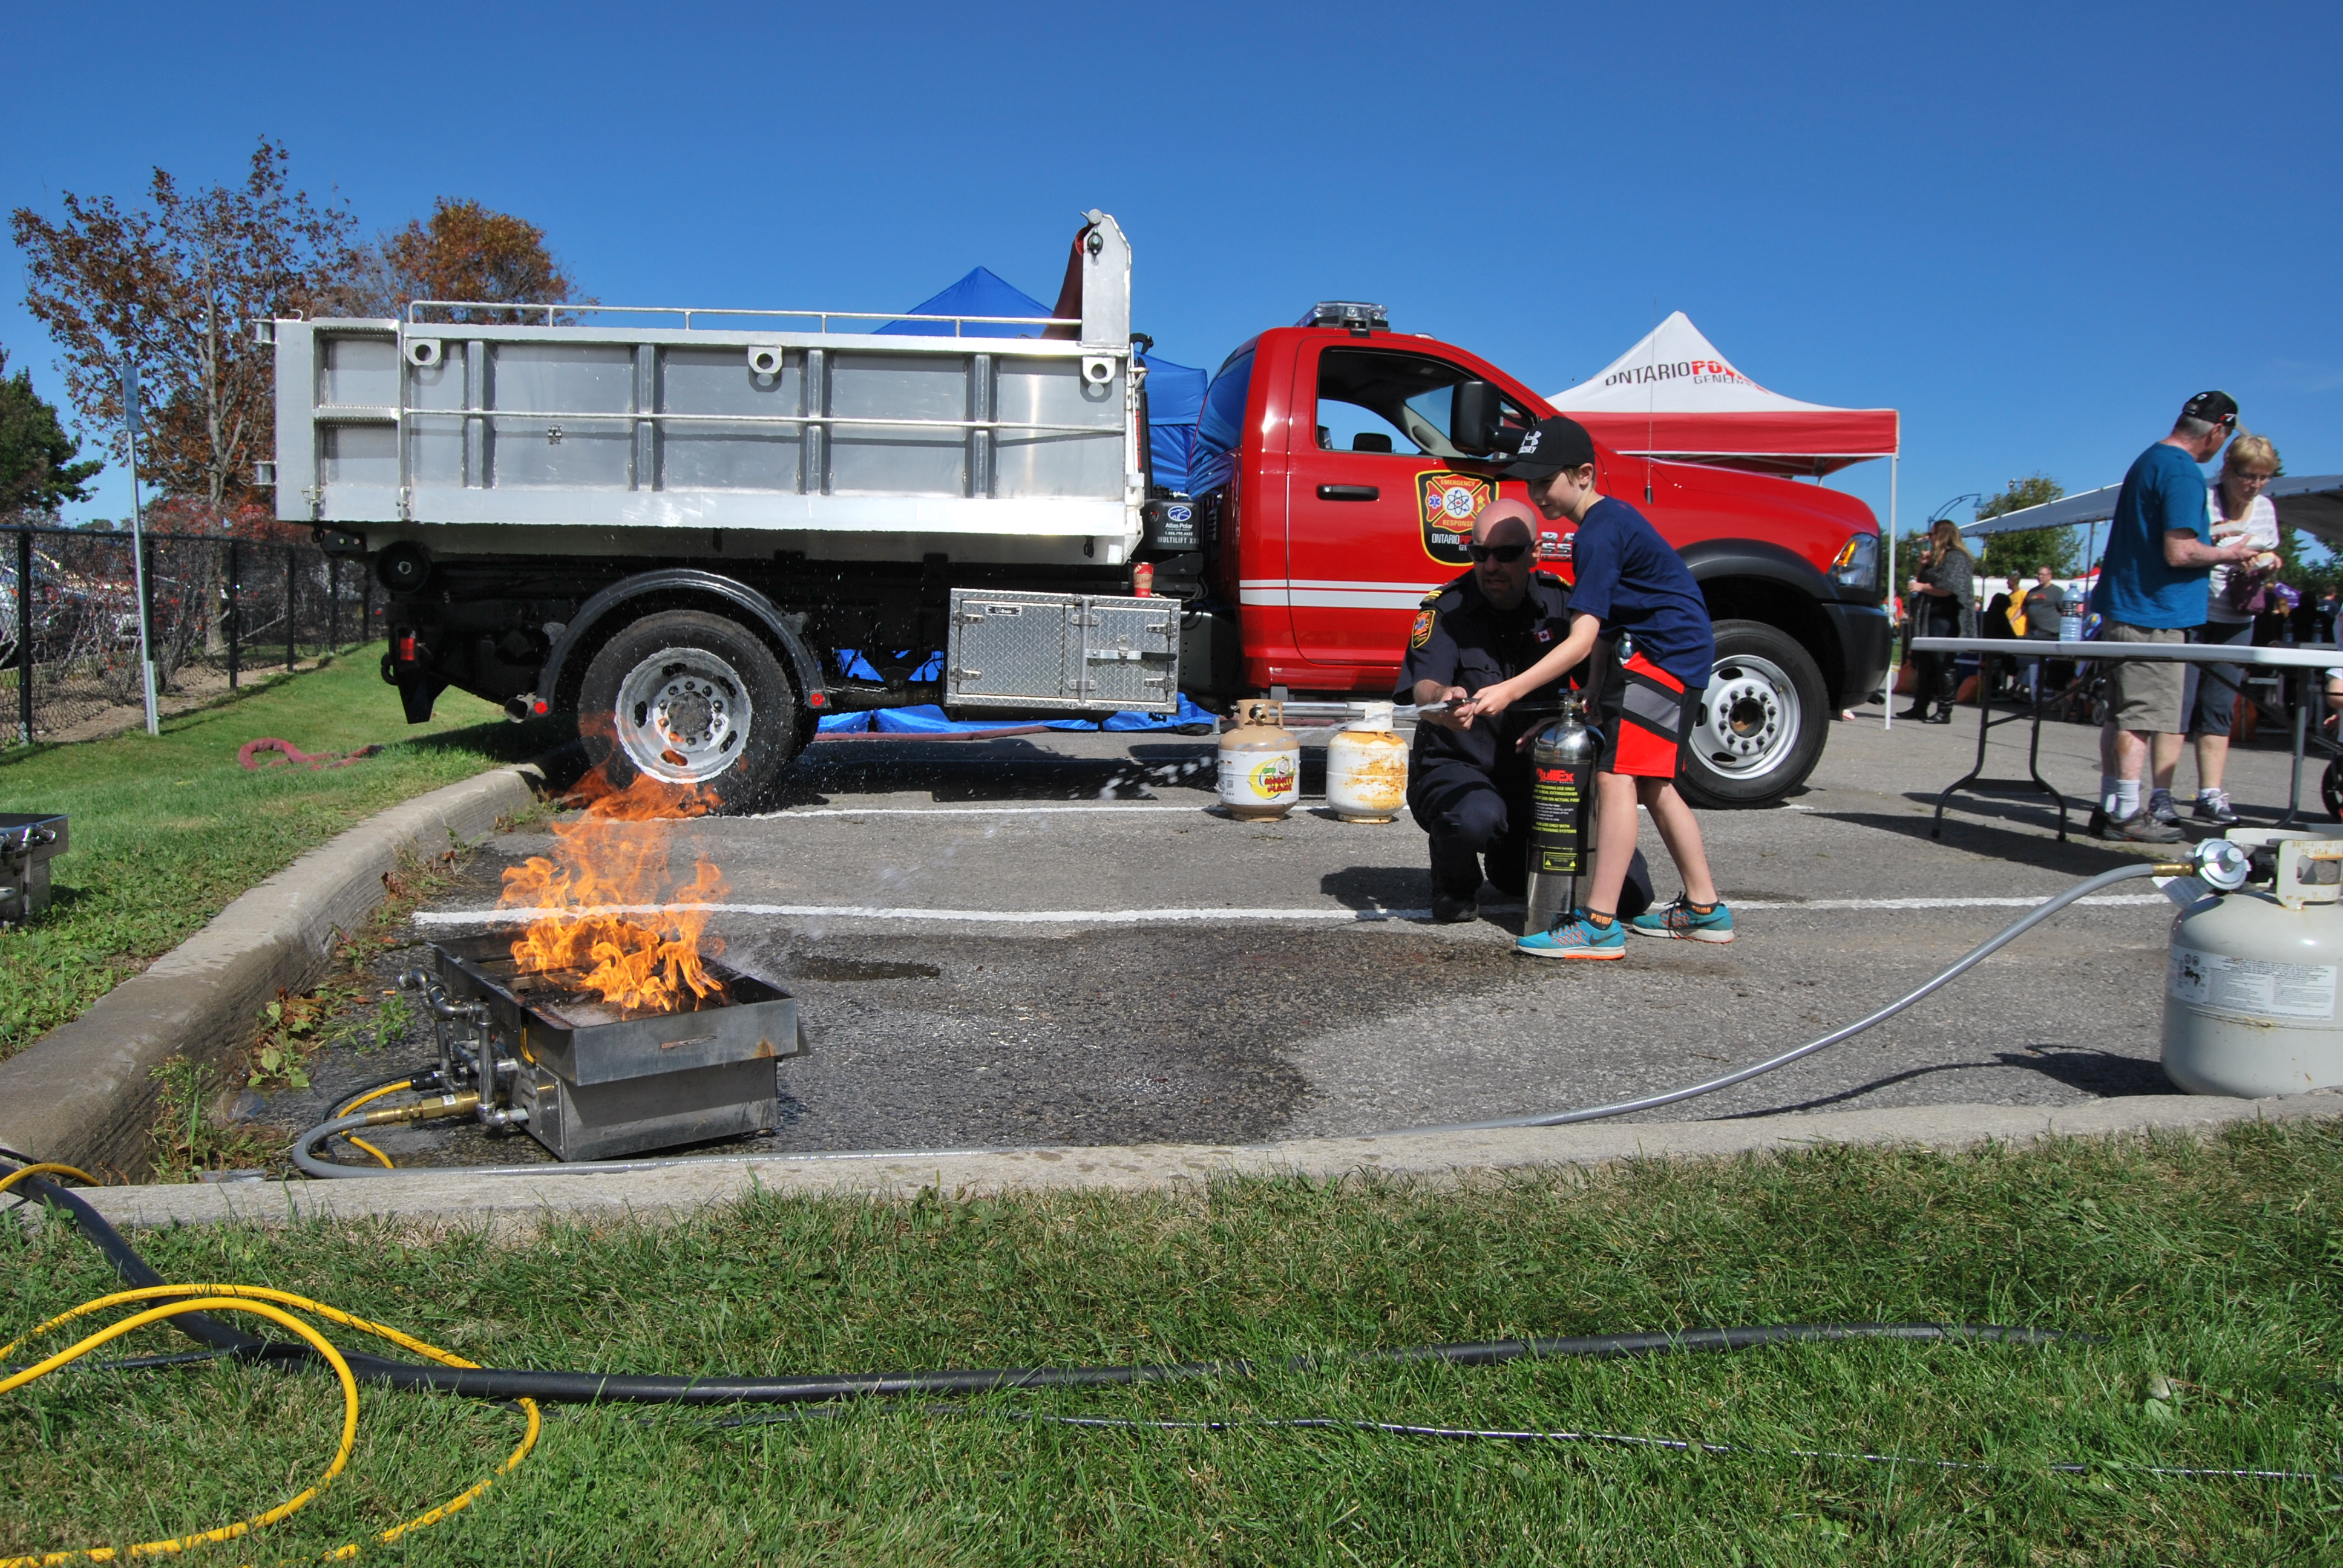 Carson puts out a fire at the Ontario Power Generation booth at Family Safety Day 2015